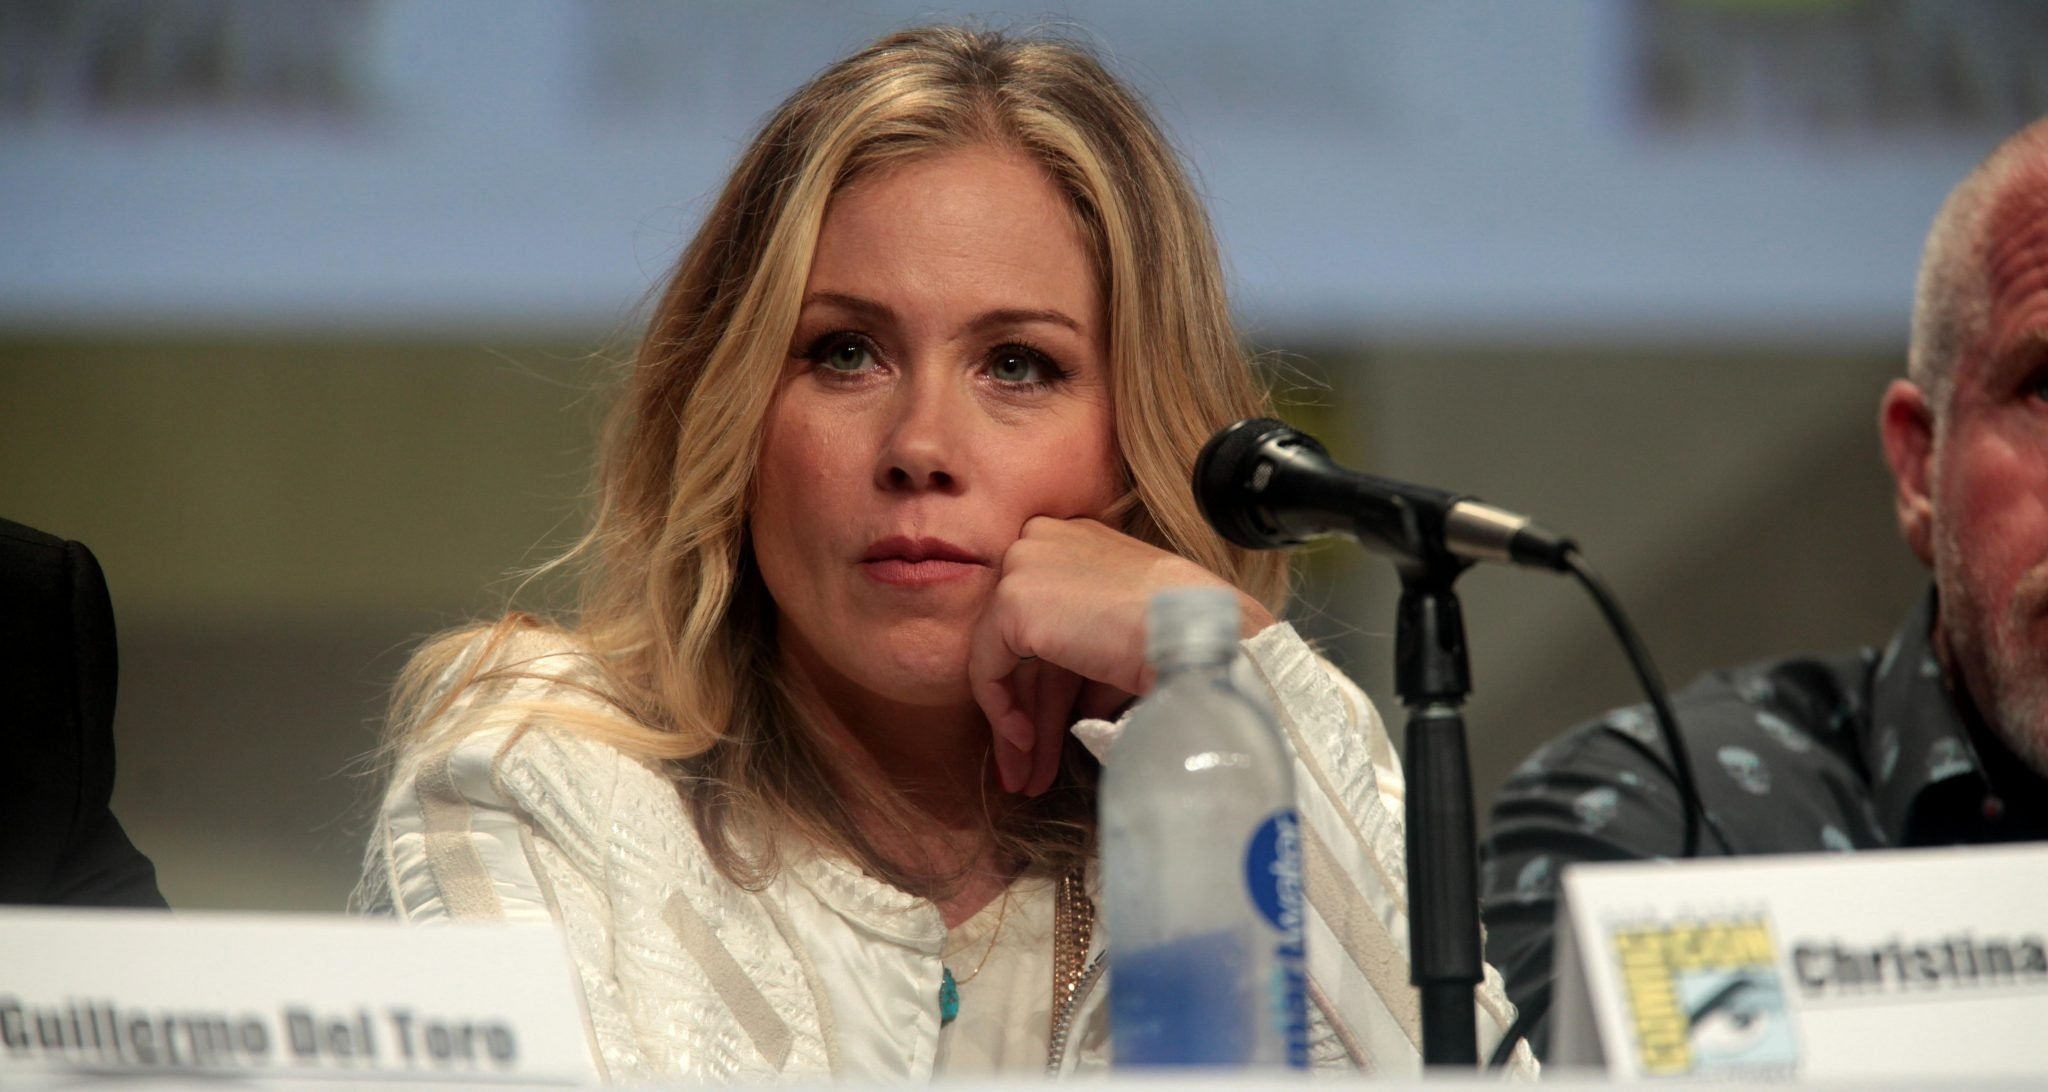 Christina Applegate Confesses Love